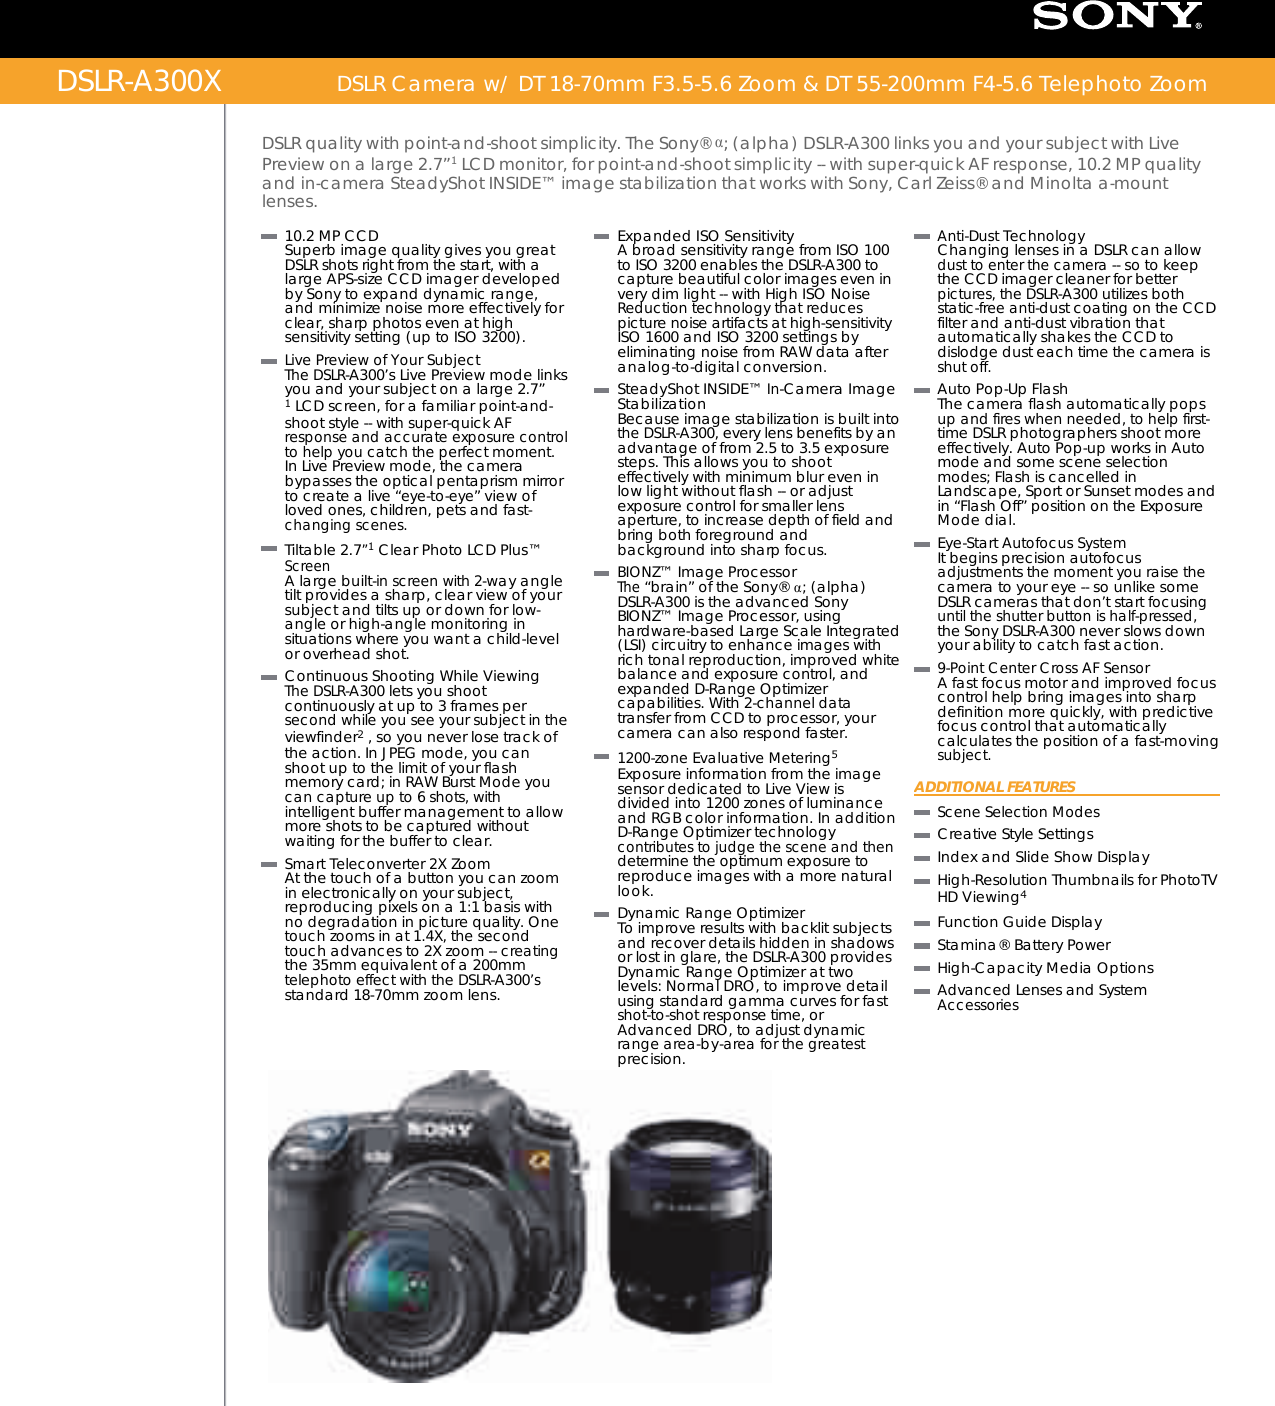 sony dslr a300 user manual marketing specifications dslr a300x rh usermanual wiki Sony A200 Manual Sony 300 Camera